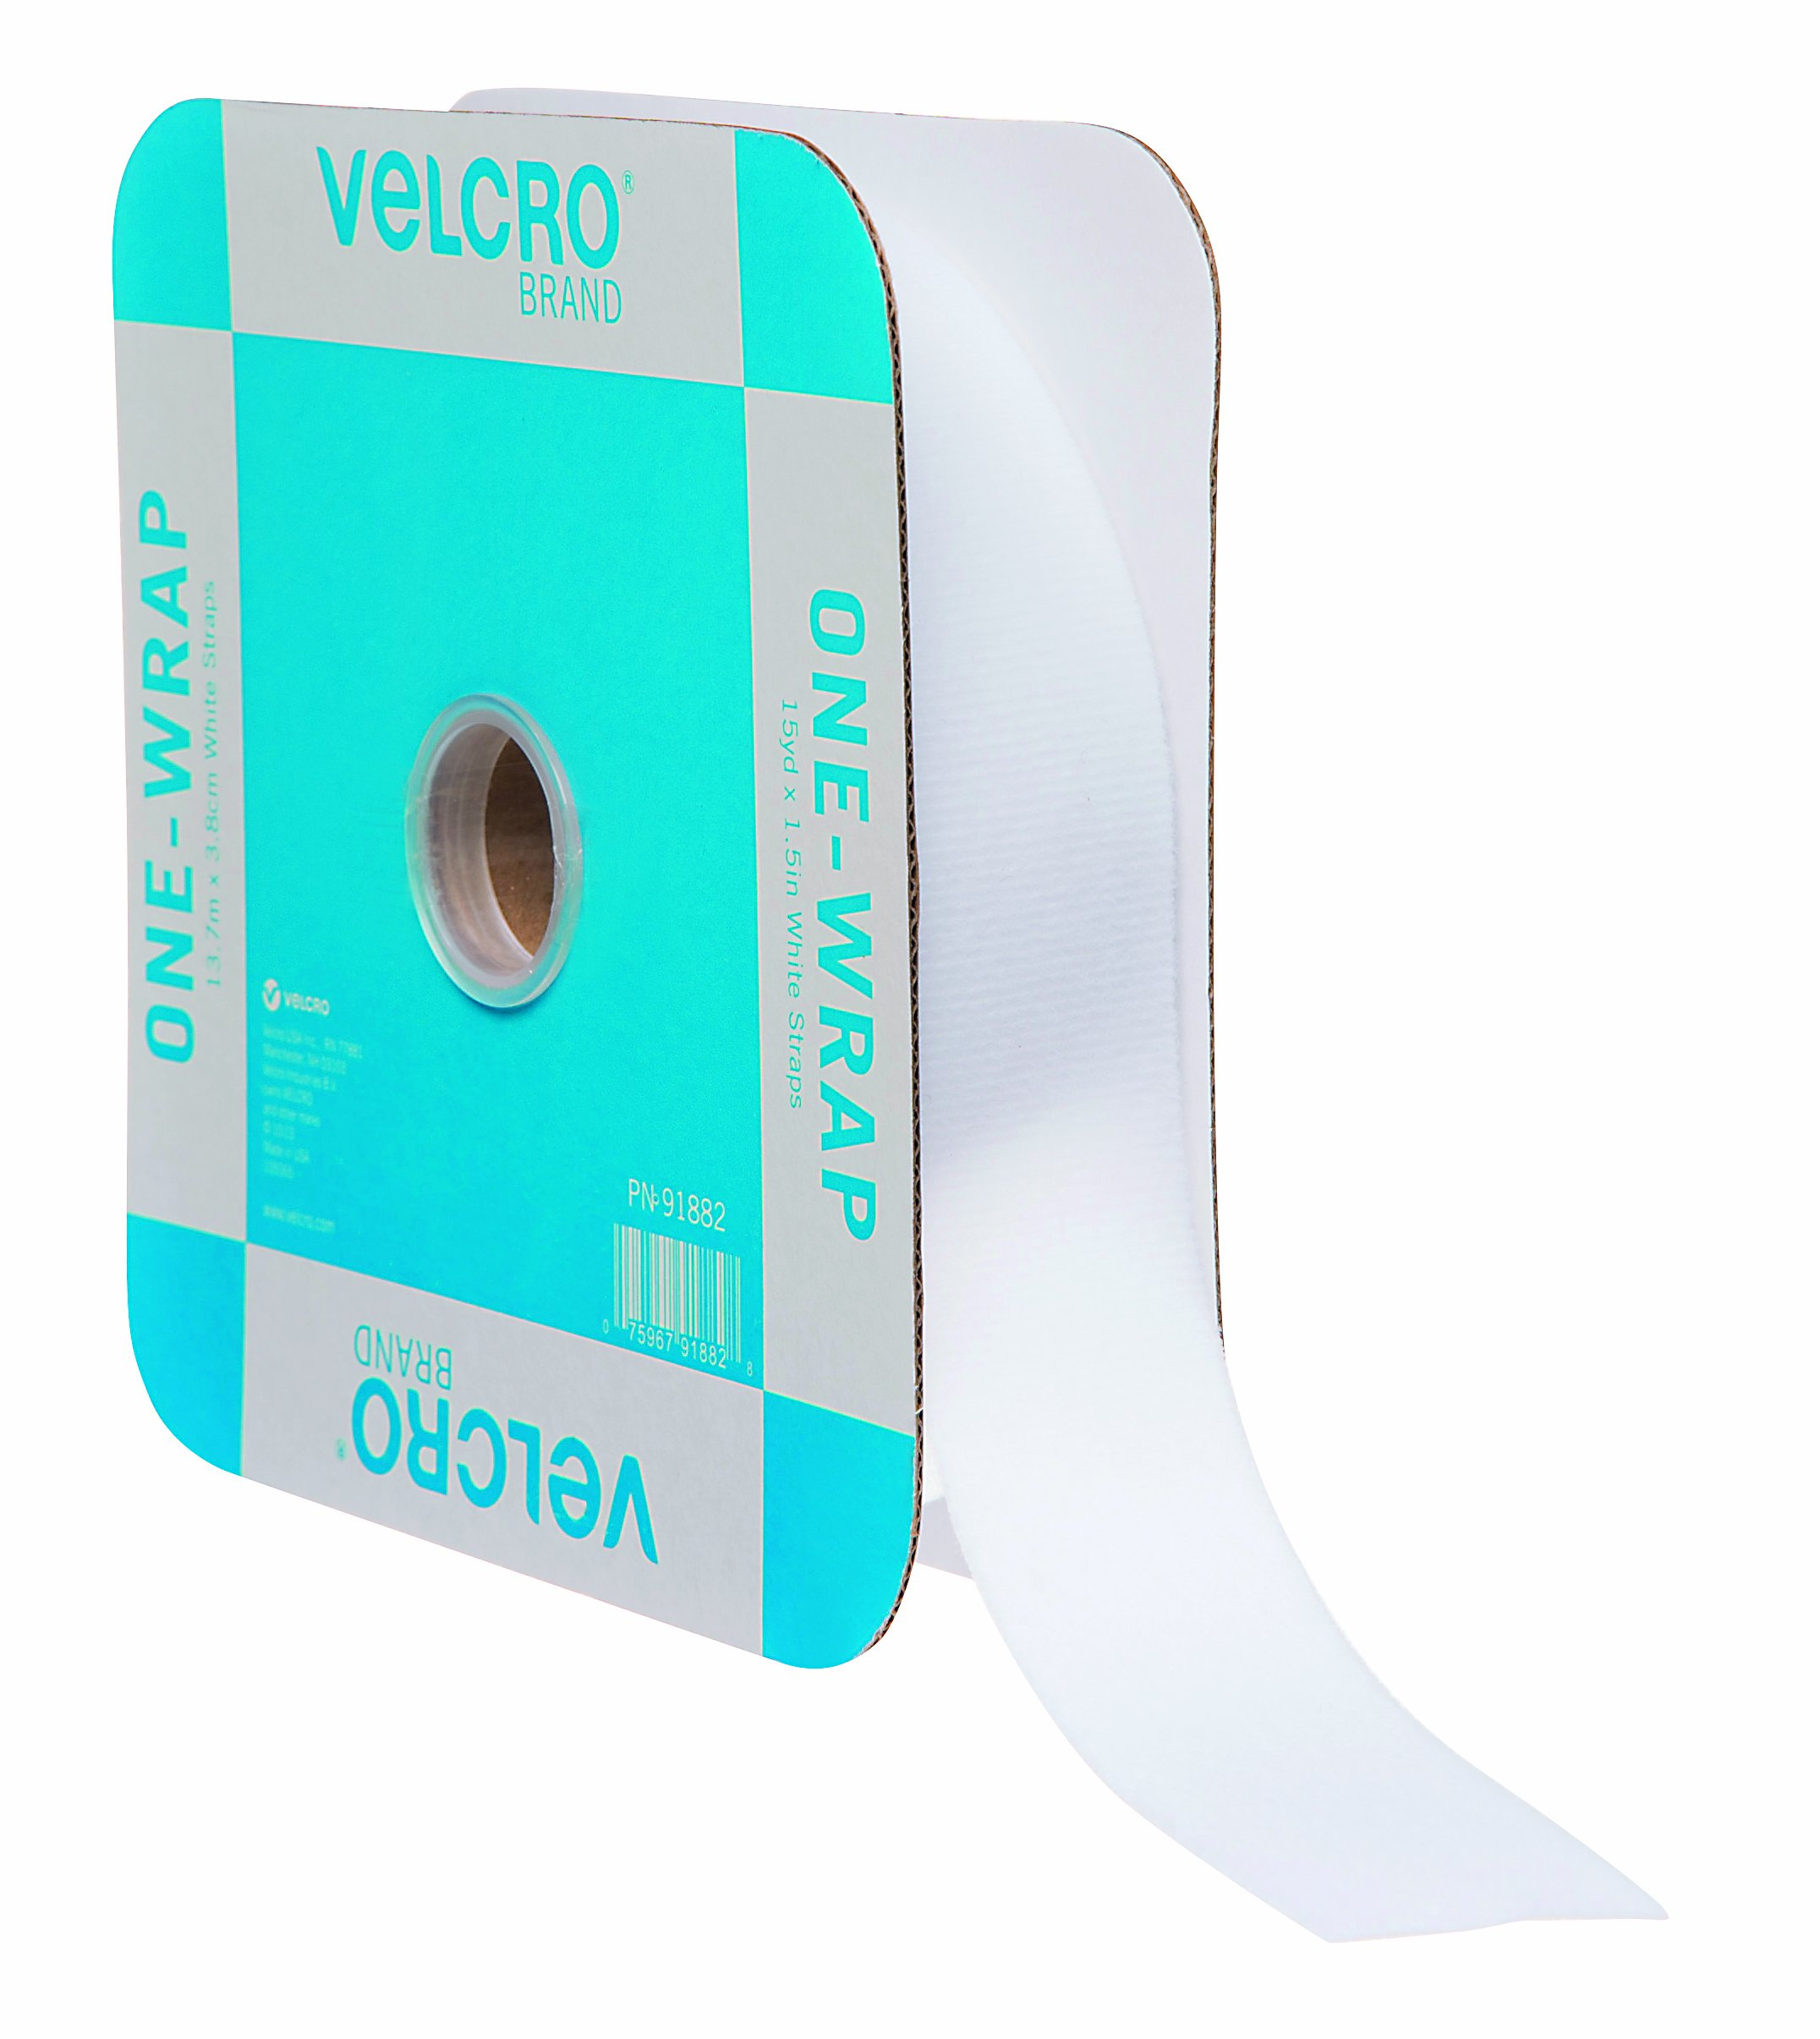 VELCRO Brand - ONE-WRAP Roll, Double-Sided, Self Gripping Multi-Purpose Hook and Loop Tape, Reusable, 45' x 1 1/2'' Roll - White